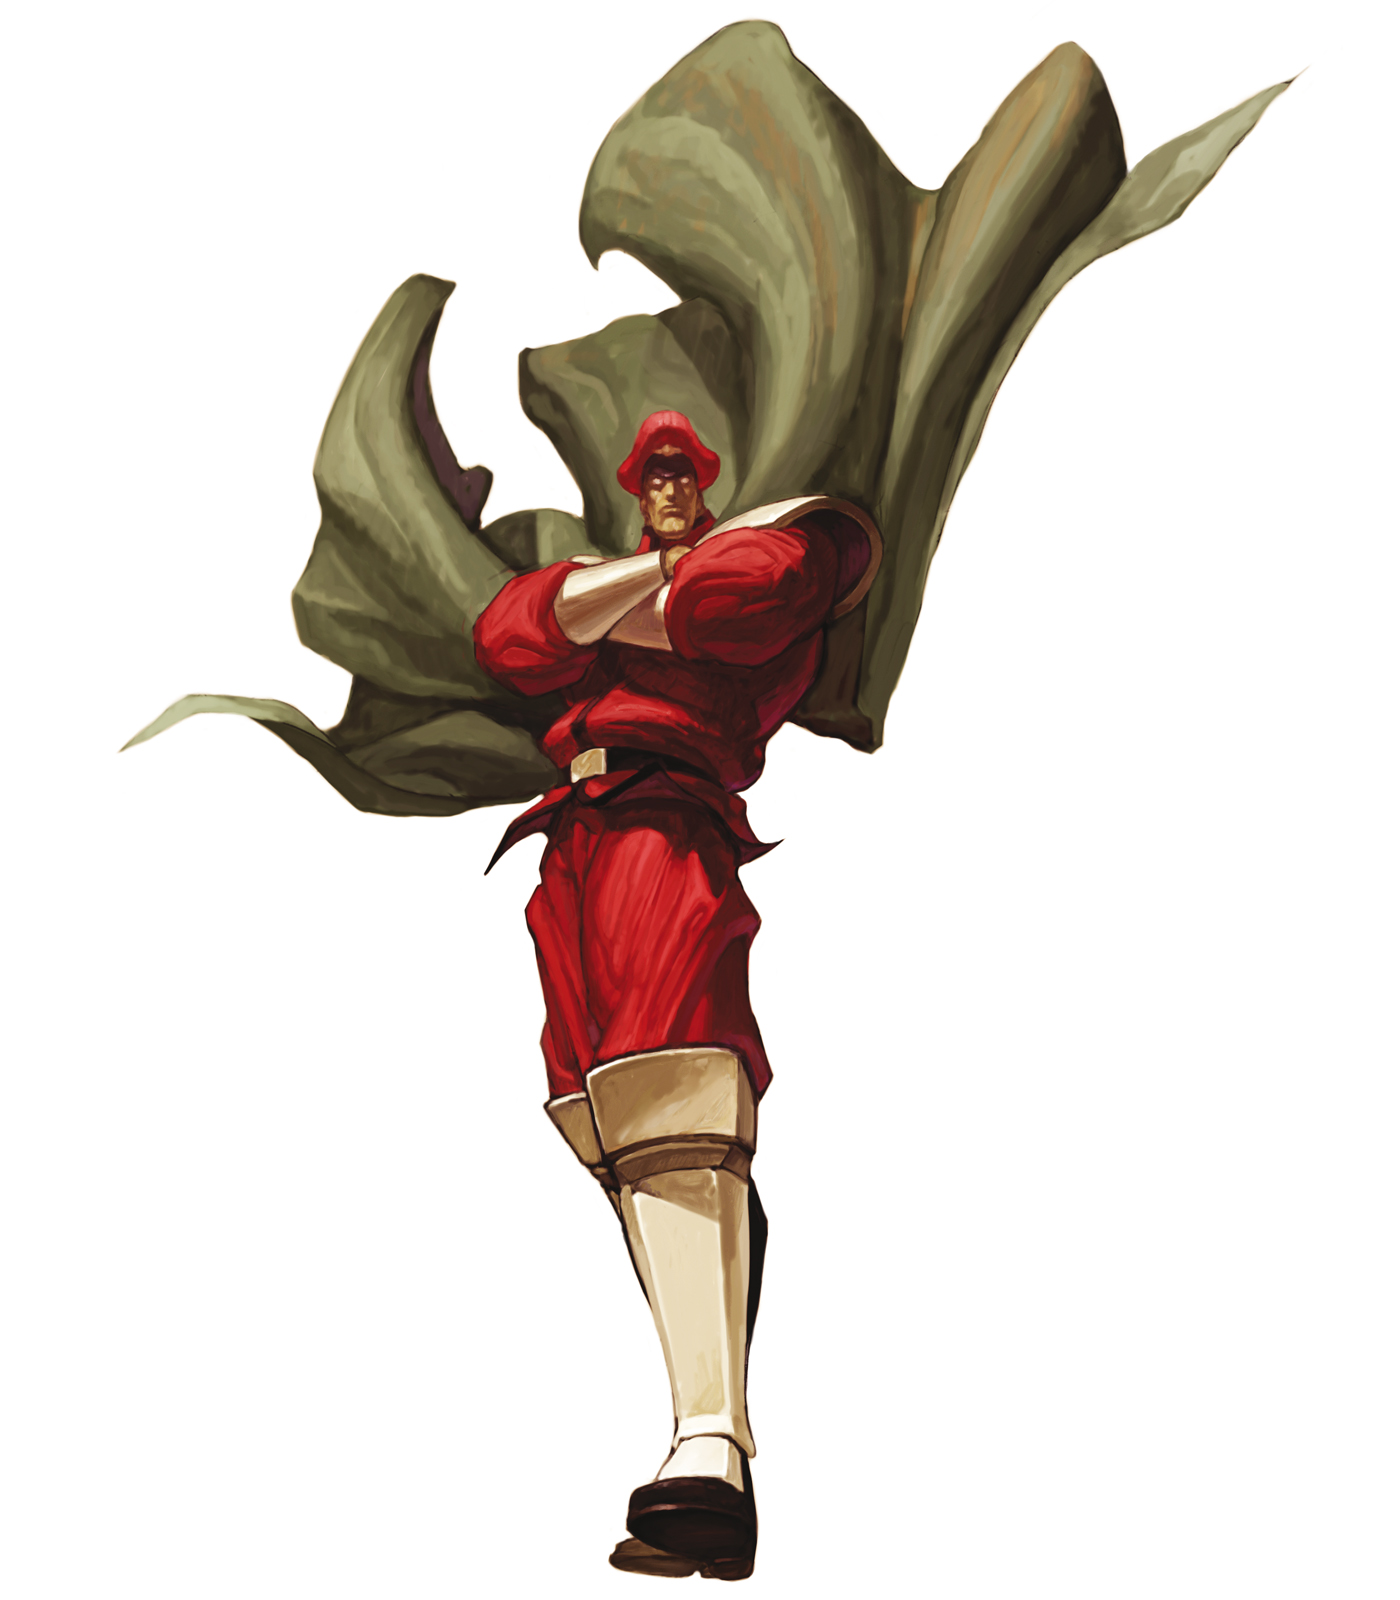 Image - Bison-SVC.jpg - The Street Fighter Wiki - Street ...